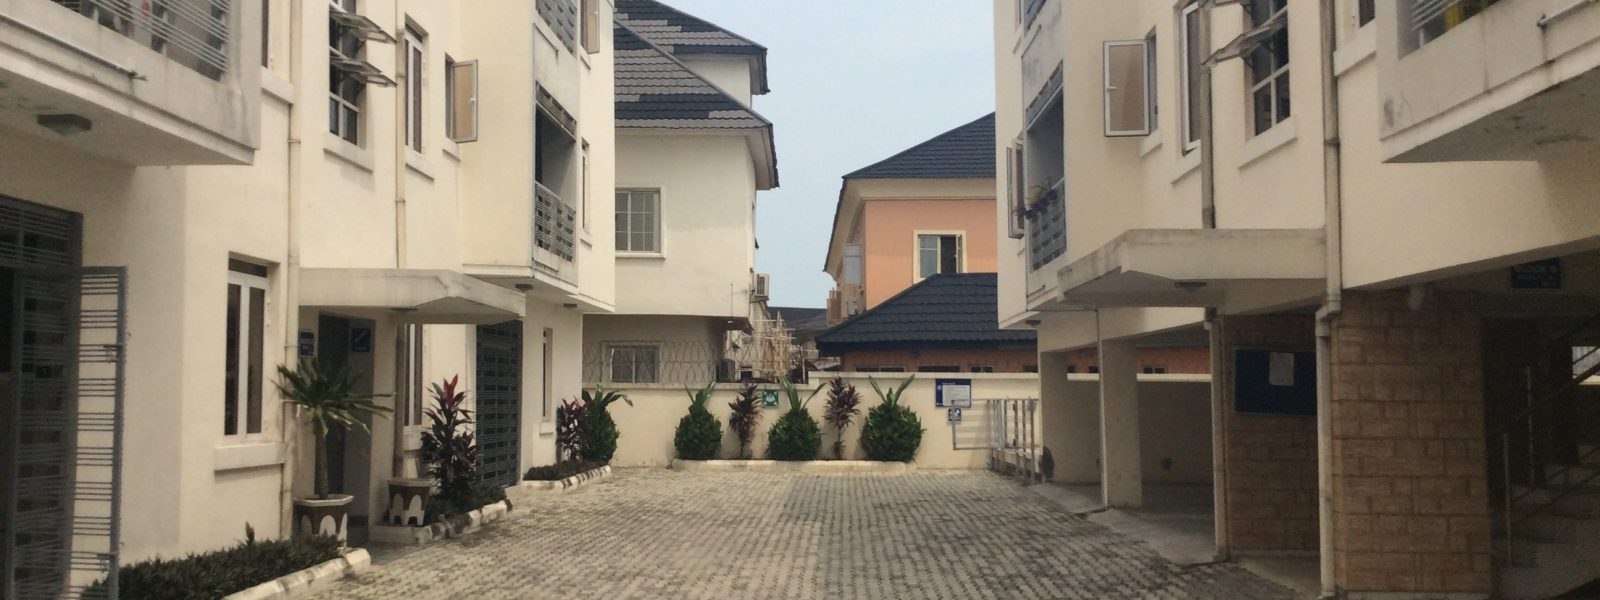 "LOVELY 3 BEDROOM FLAT IN TWIN VIEW APARTMENT CHEVY VIEW <font color=""#a30000;"">(For Sale: 30 Million)</font>"